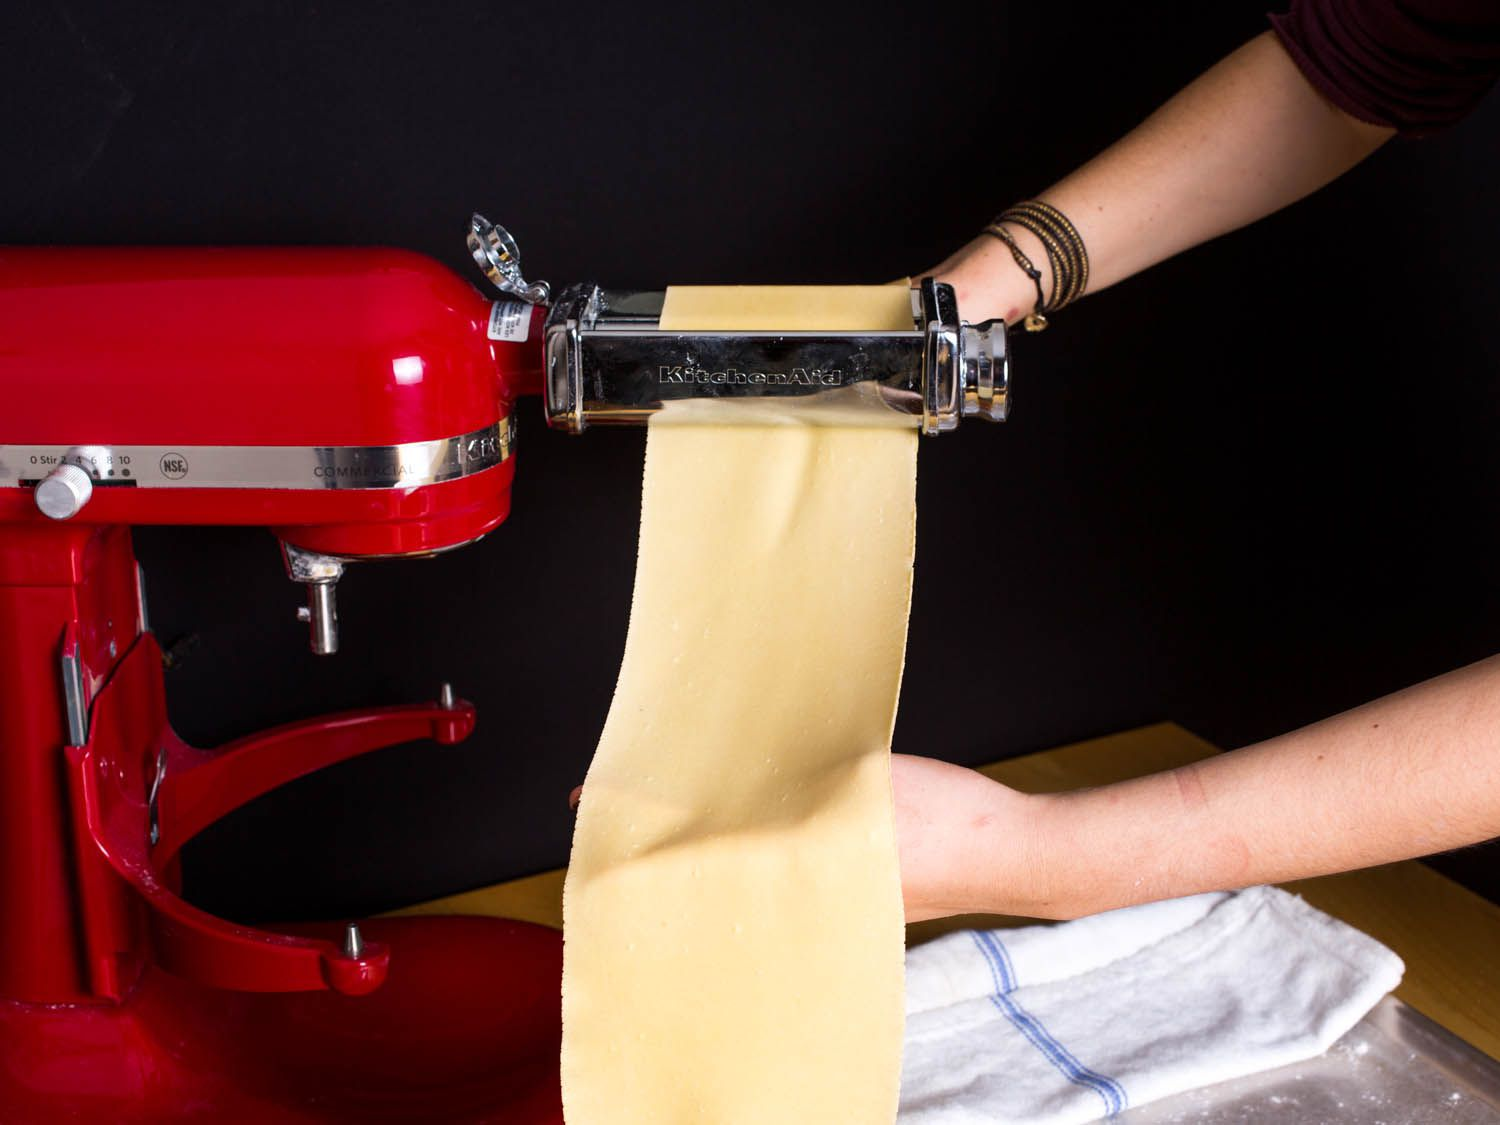 A sheet of fresh pasta being rolled out.